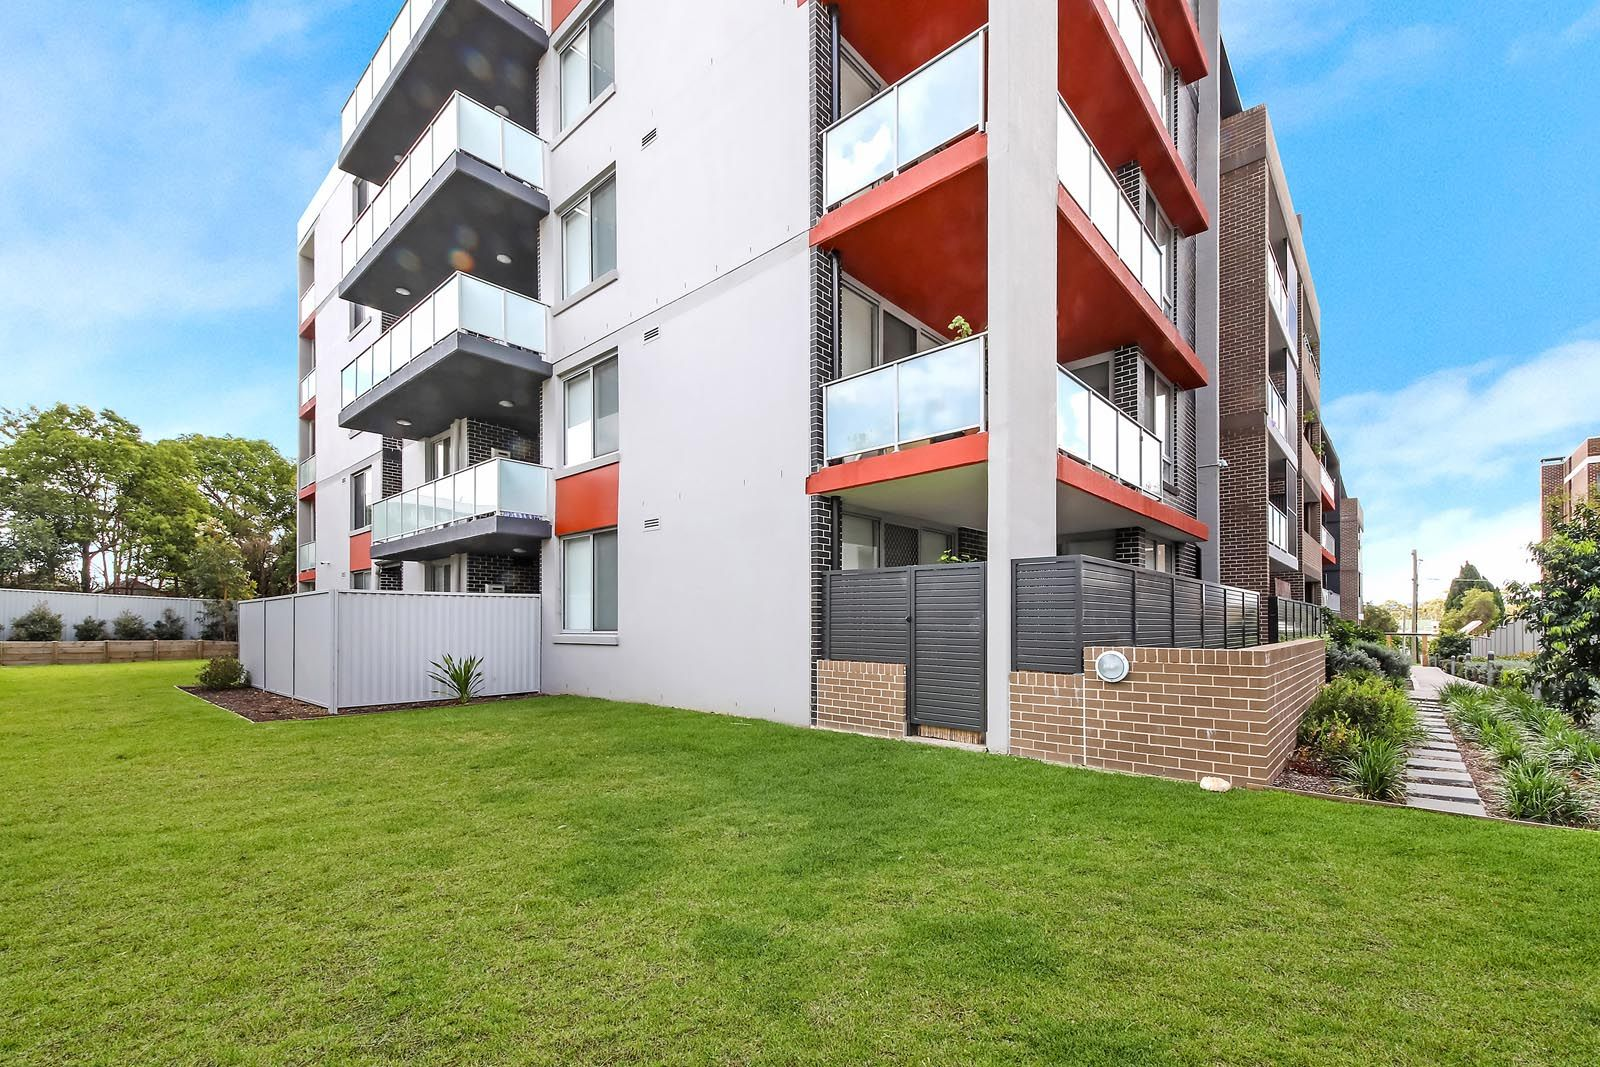 19/18-22A Hope St, Rosehill NSW 2142, Image 1